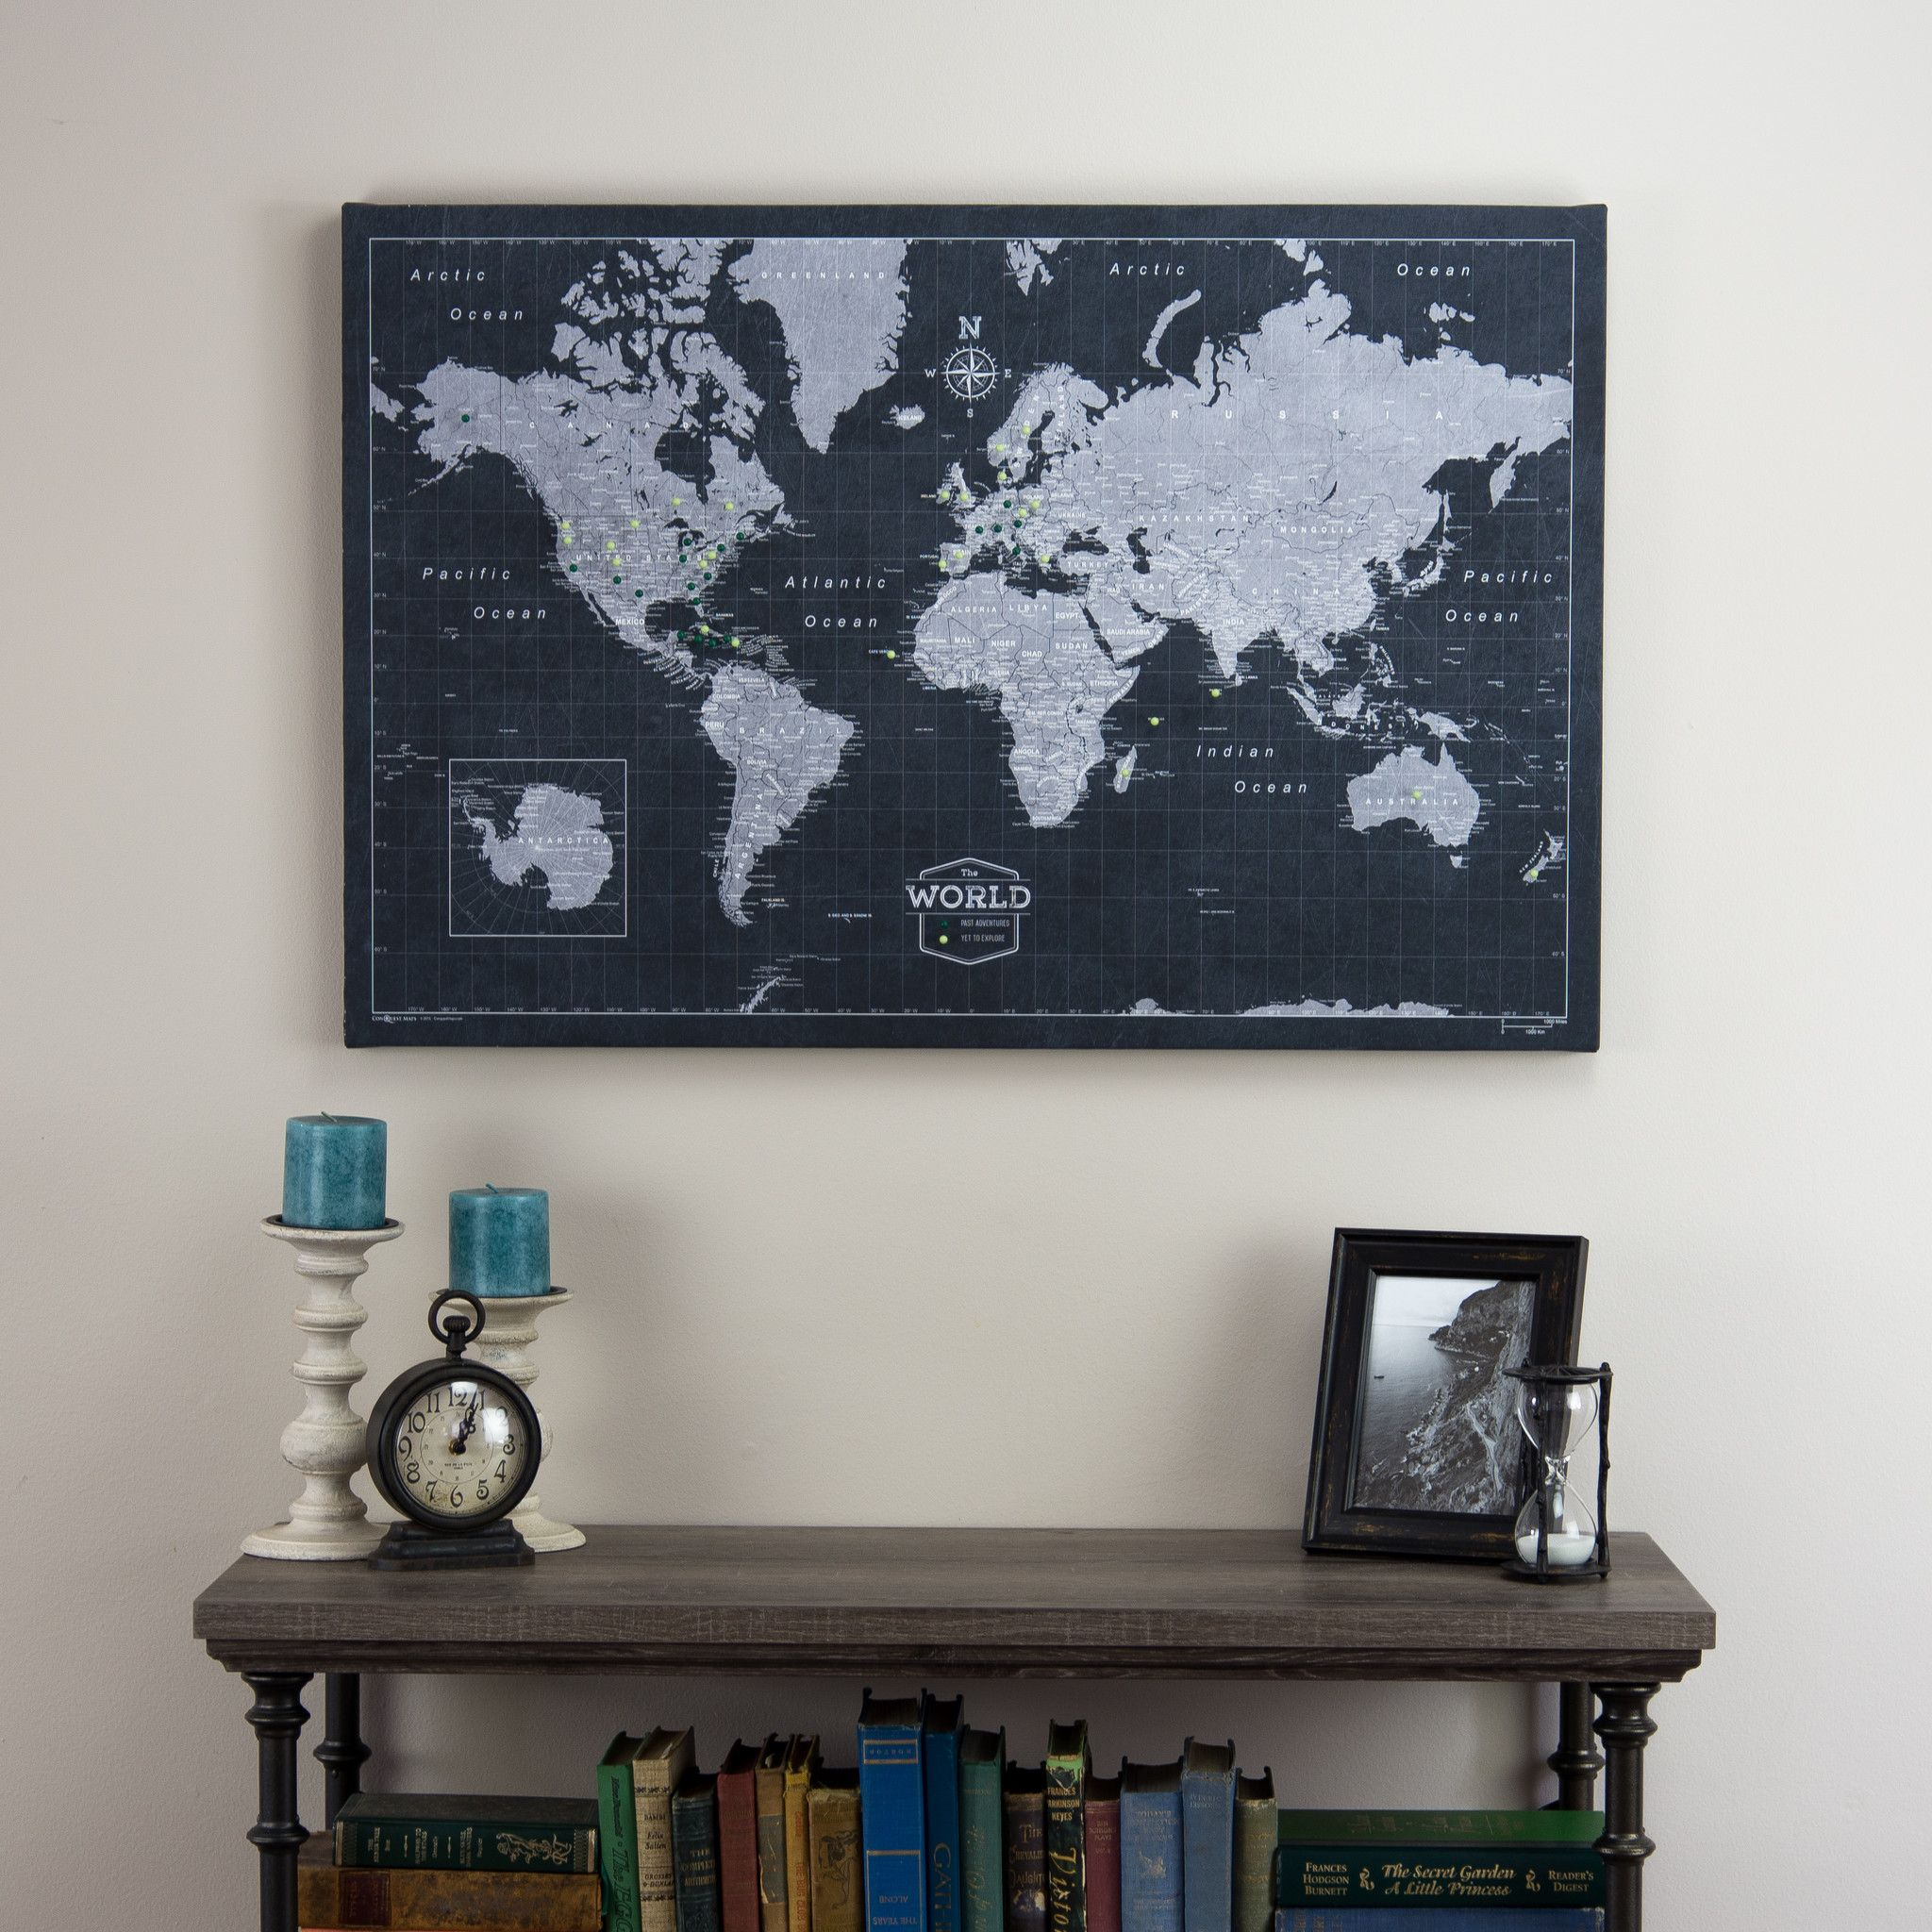 World Travel Map Pin Board wPush Pins Modern Slate – Travel Maps With Pins